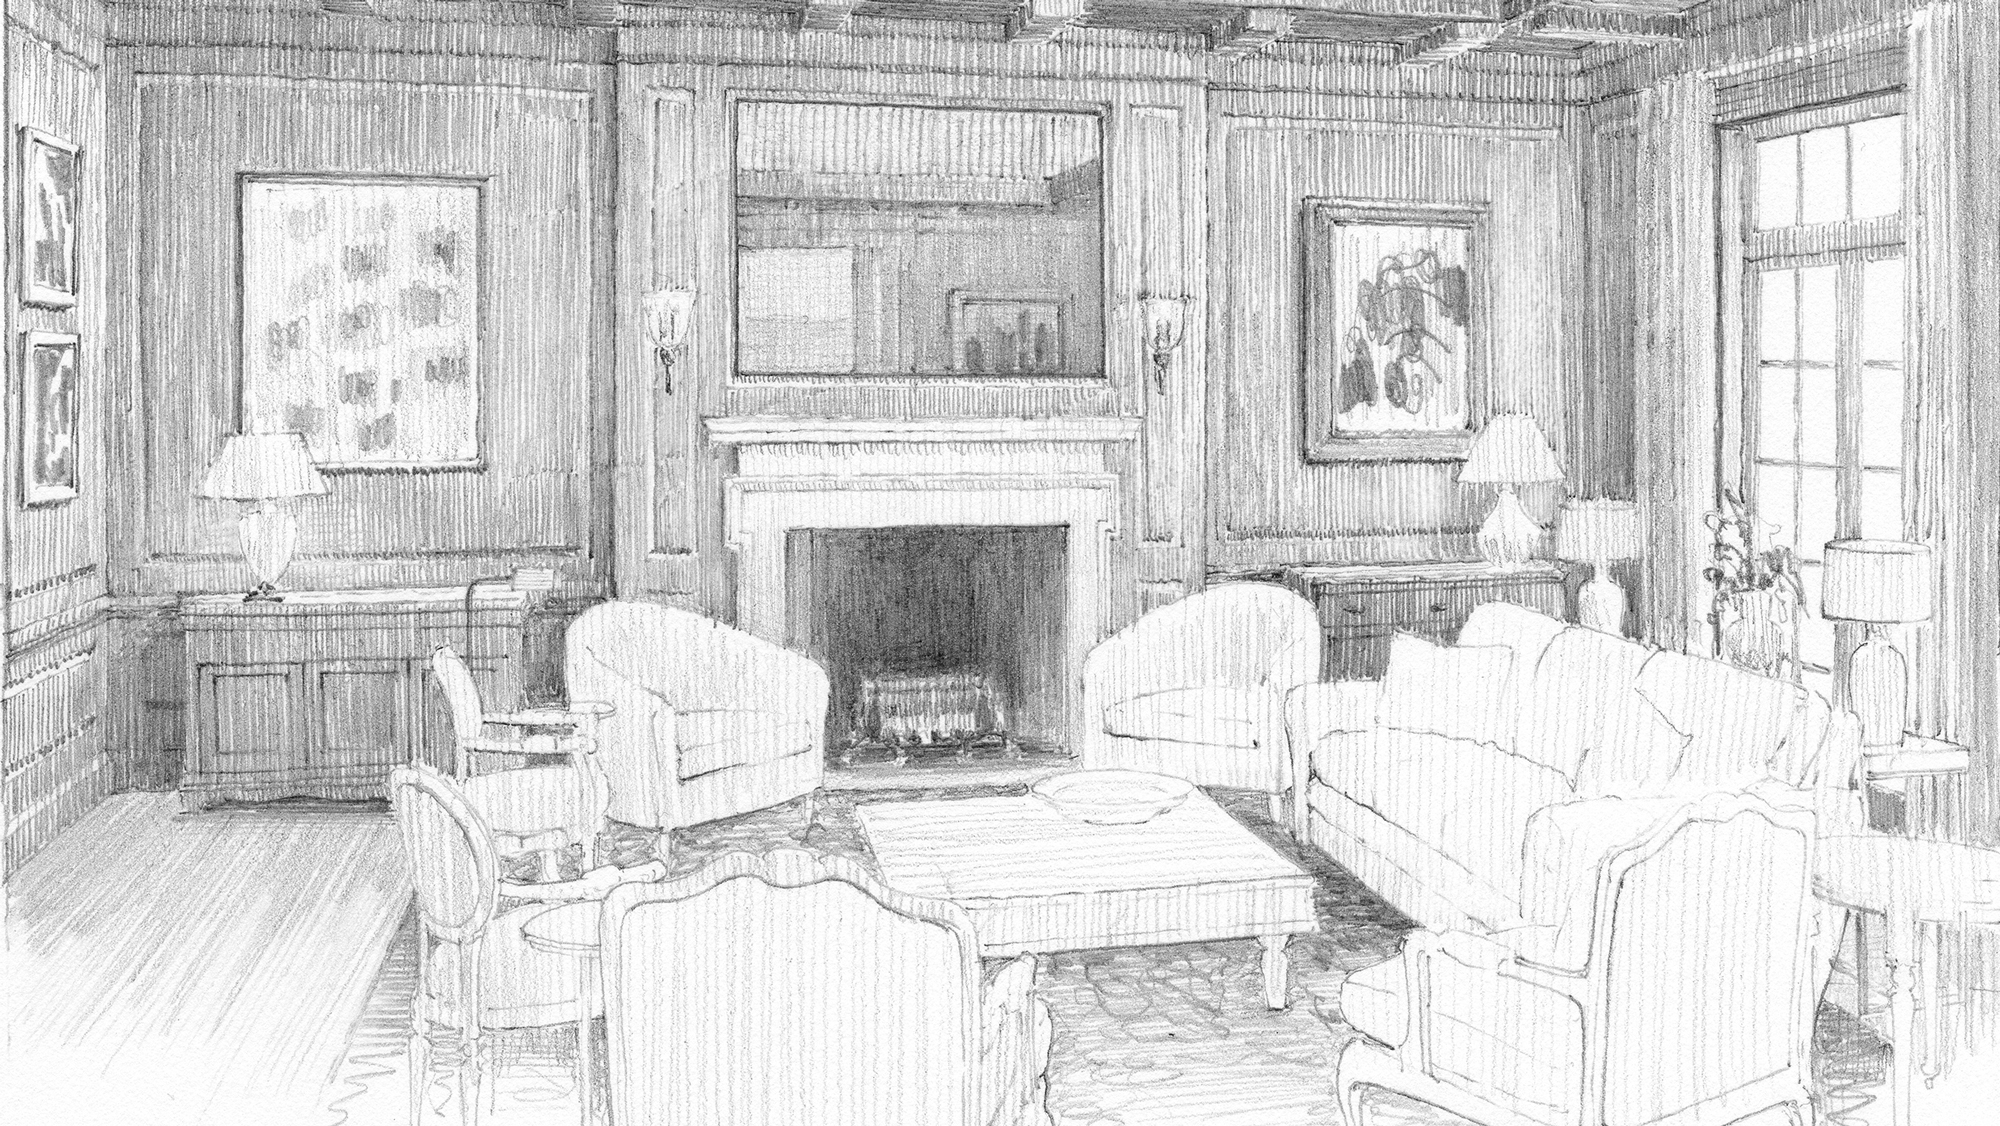 Rendering The Architectural Interior In Pencil Institute